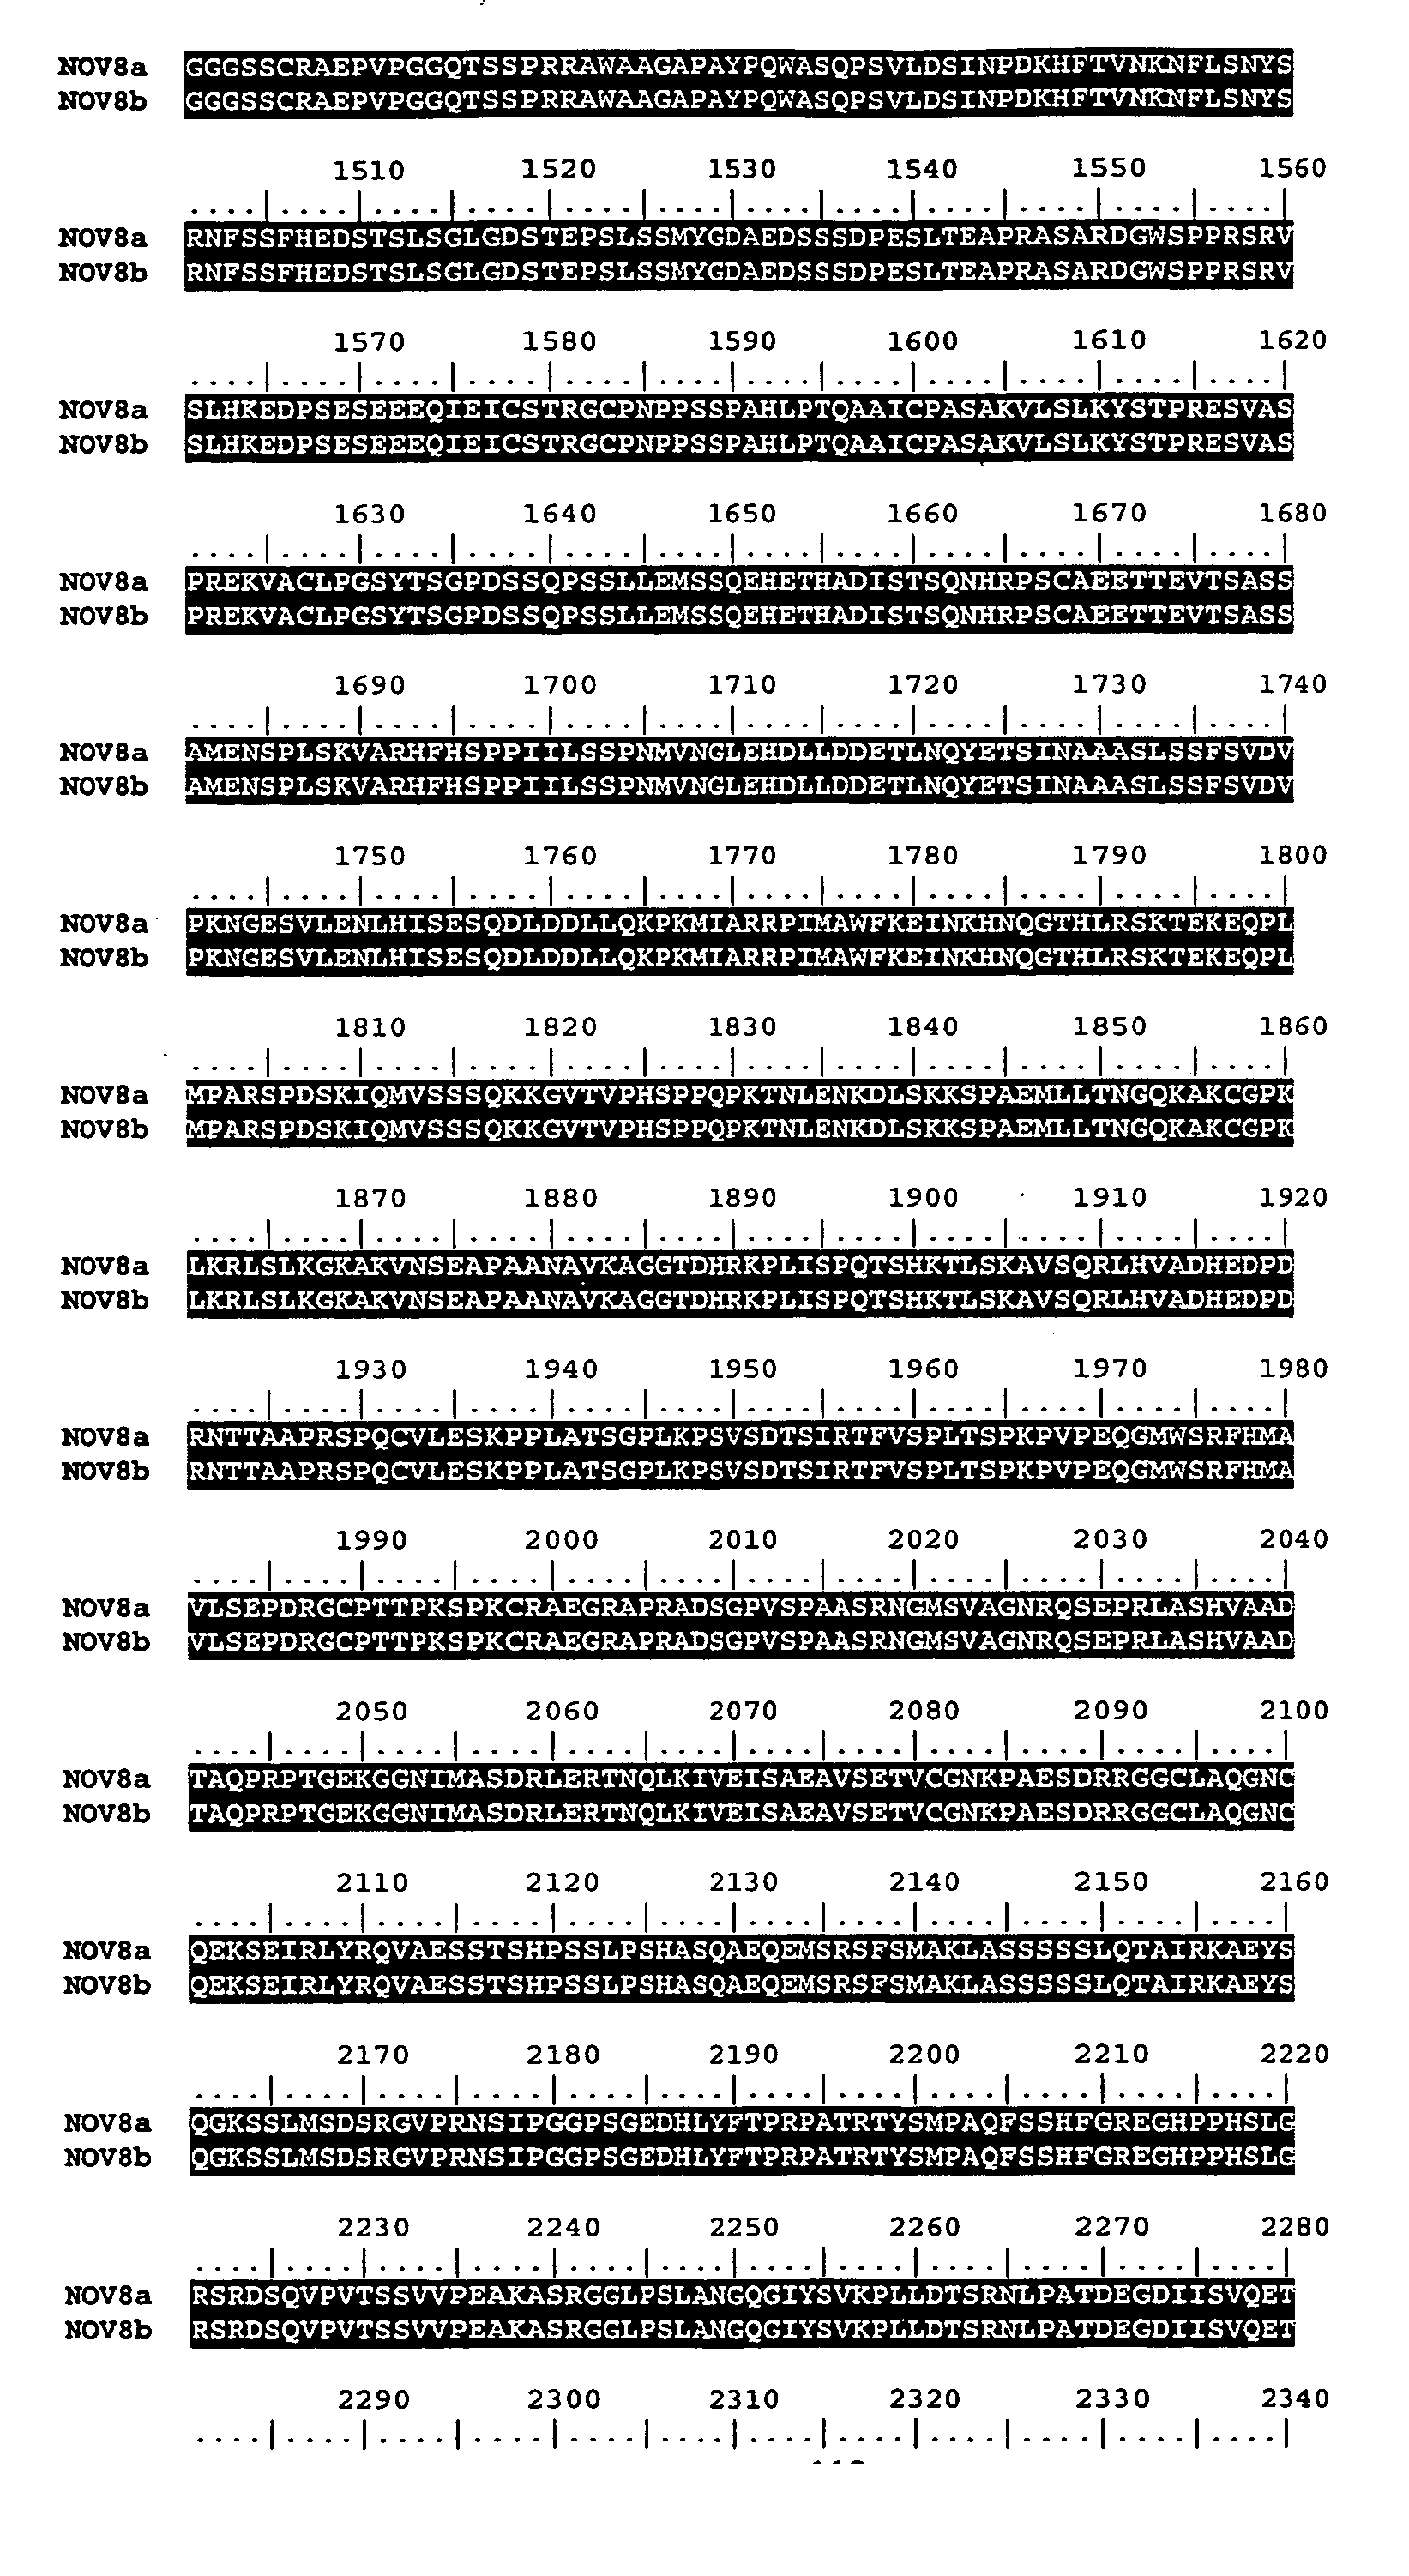 Best Pheromones 2020 US20060014153A1   Novel proteins and nucleic acids encoding same